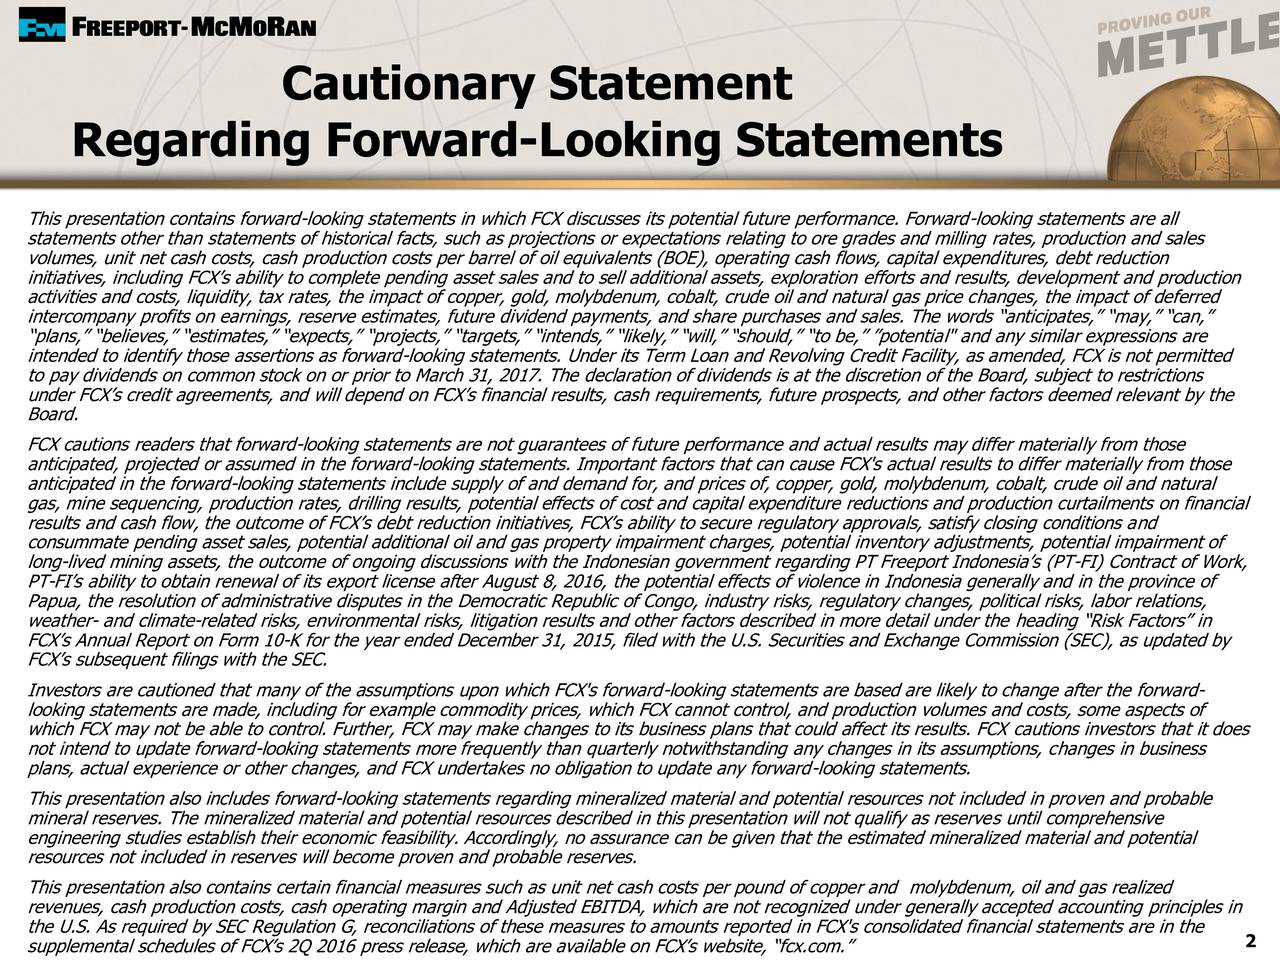 """Regarding Forward-Looking Statements This presentation contains forward-looking statements in which FCX discusses its potential future performance. Forward-looking statements are all statements other than statements of historical facts, such as projections or expectations relating to ore grades and milling rates, production and sales volumes, unit net cash costs, cash production costs per barrel of oil equivalents (BOE), operating cash flows, capital expenditures, debt reduction initiatives, including FCXs ability to complete pending asset sales and to sell additional assets, exploration efforts and results, development and production activities and costs, liquidity, tax rates, the impact of copper, gold, molybdenum, cobalt, crude oil and natural gas price changes, the impact of deferred intercompany profits on earnings, reserve estimates, future dividend payments, and share purchases and sales. The words anticipates, may, can, plans, believes, estimates, expects, projects, targets, intends, likely, will, should, to be, potential"""" and any similar expressions are intended to identify those assertions as forward-looking statements. Under its Term Loan and Revolving Credit Facility, as amended, FCX is not permitted to pay dividends on common stock on or prior to March 31, 2017. The declaration of dividends is at the discretion of the Board, subject to restrictions under FCXs credit agreements, and will depend on FCXs financial results, cash requirements, future prospects, and other factors deemed relevant by the Board. FCX cautions readers that forward-looking statements are not guarantees of future performance and actual results may differ materially from those anticipated, projected or assumed in the forward-looking statements. Important factors that can cause FCX's actual results to differ materially from those anticipated in the forward-looking statements include supply of and demand for, and prices of, copper, gold, molybdenum, cobalt, crude oil and natural gas, m"""